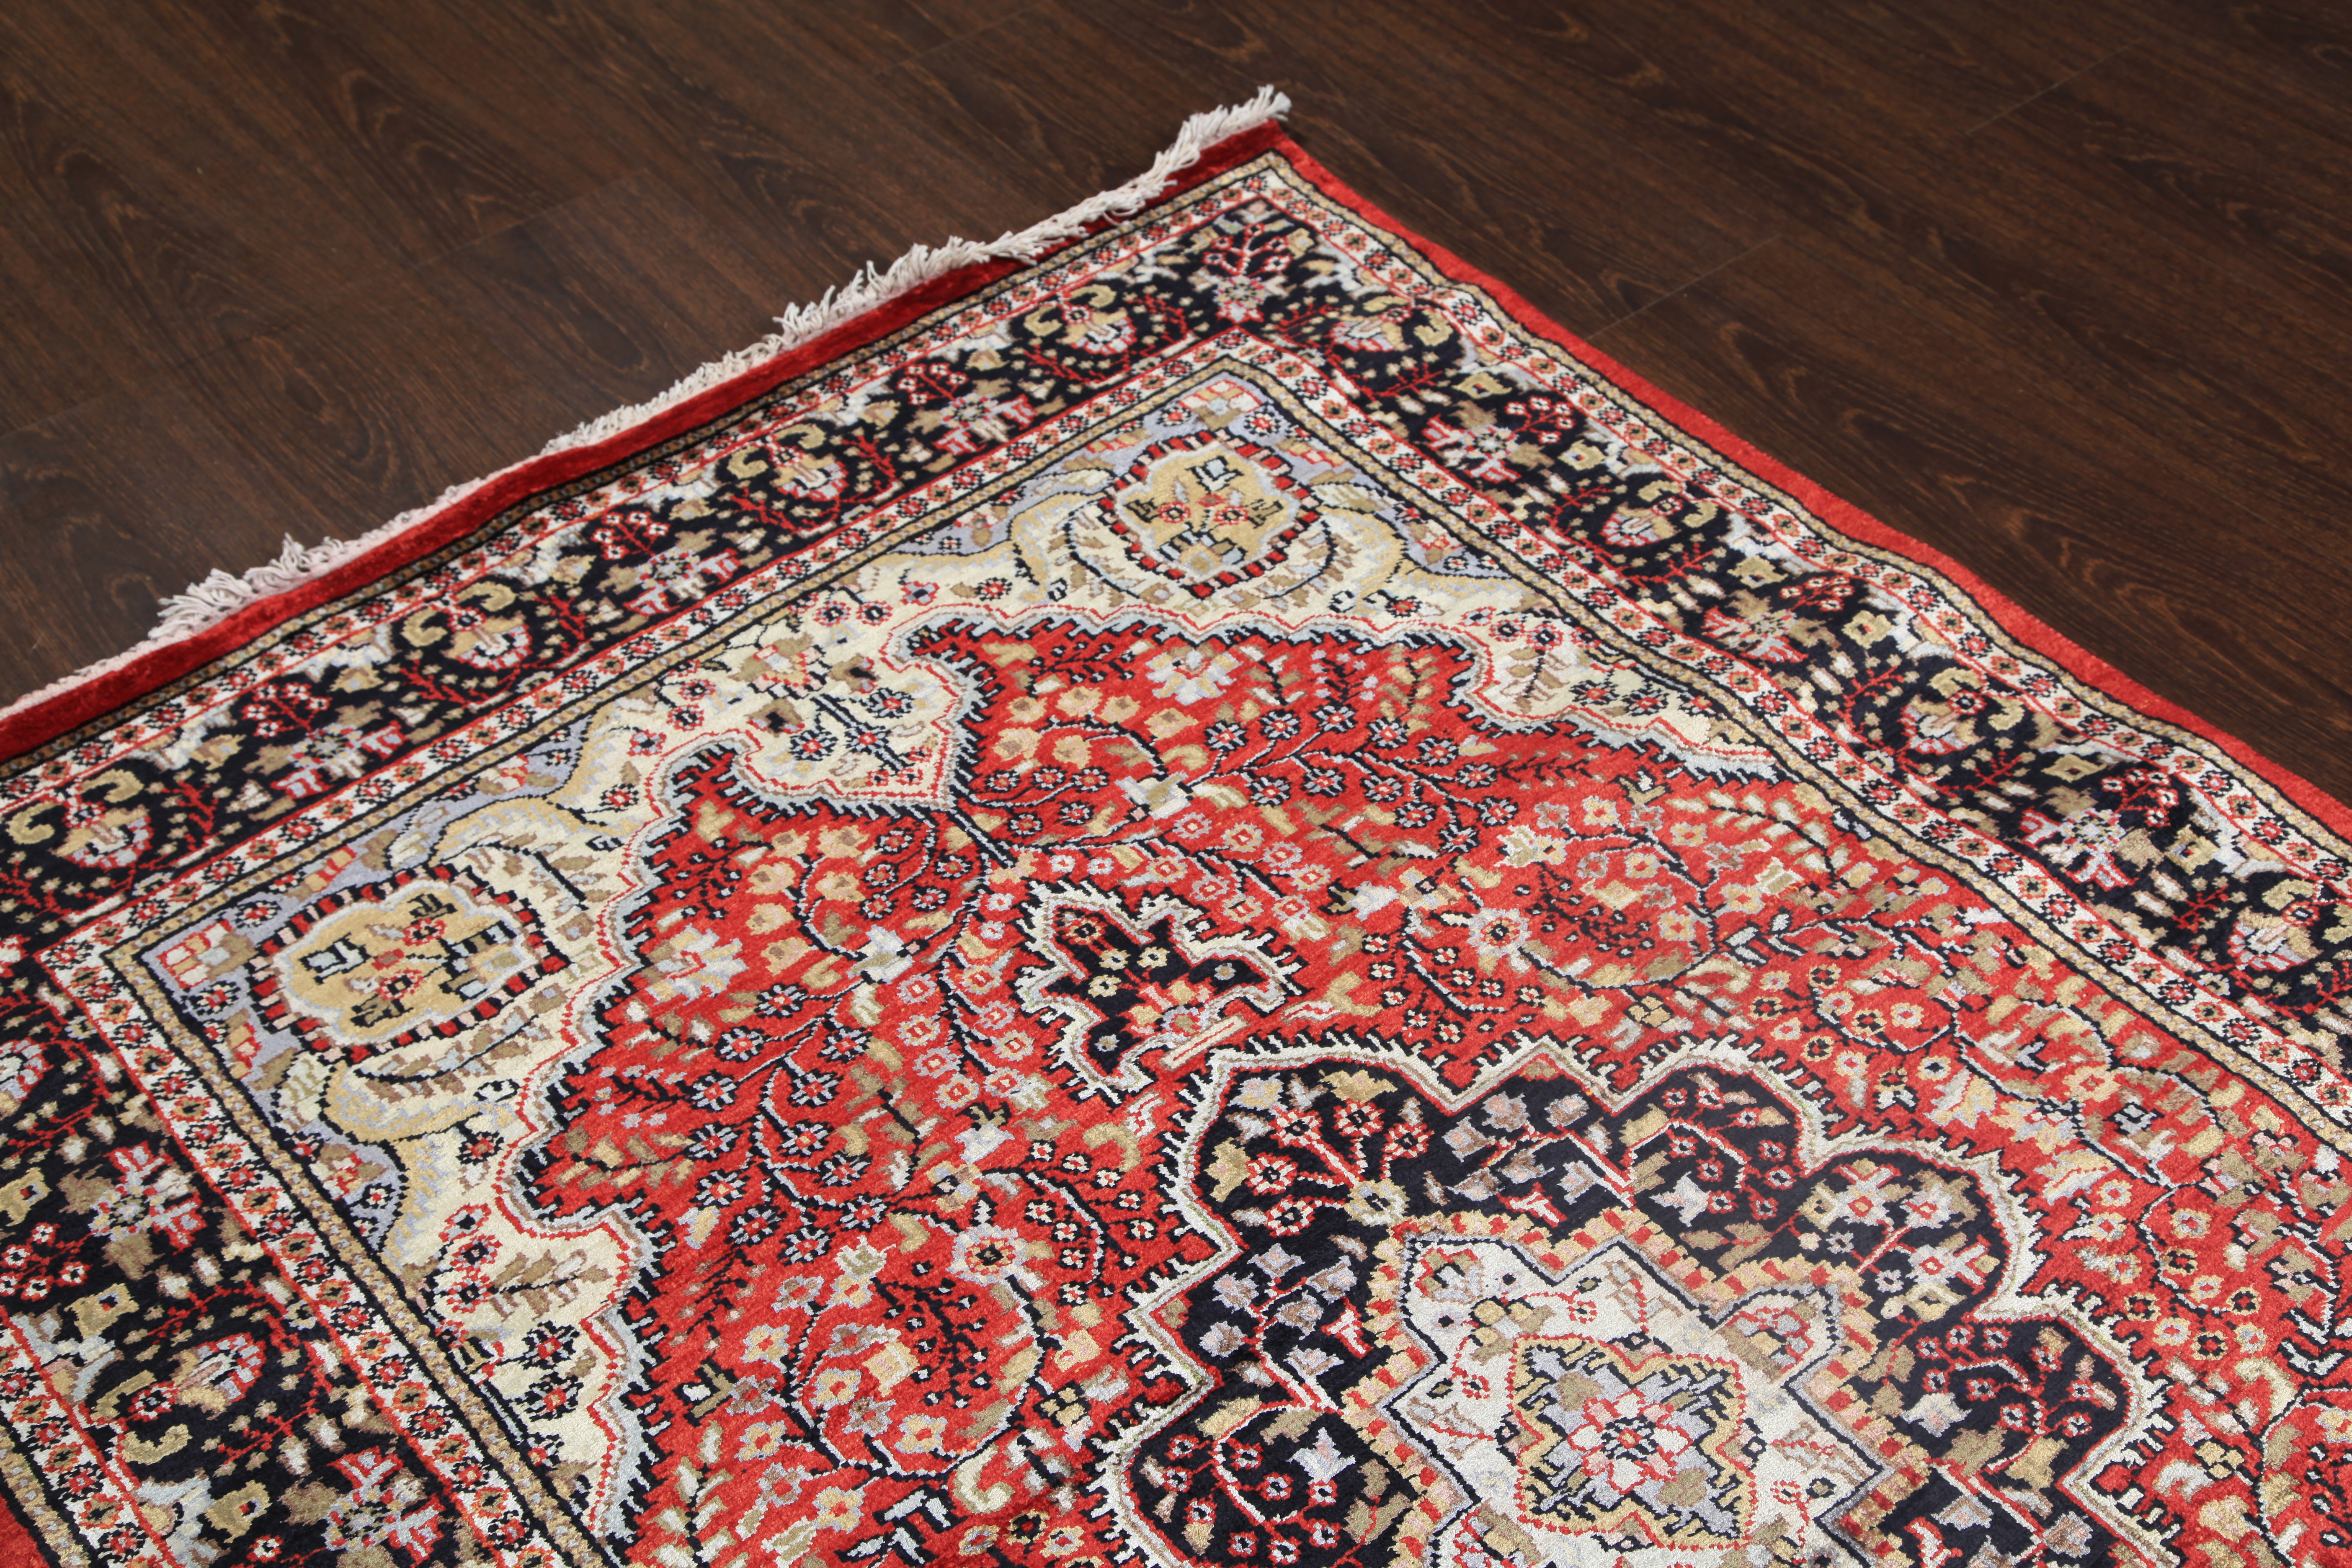 wool knotted hand molurus lindstrom rugs rug and viyet furniture silk designer front